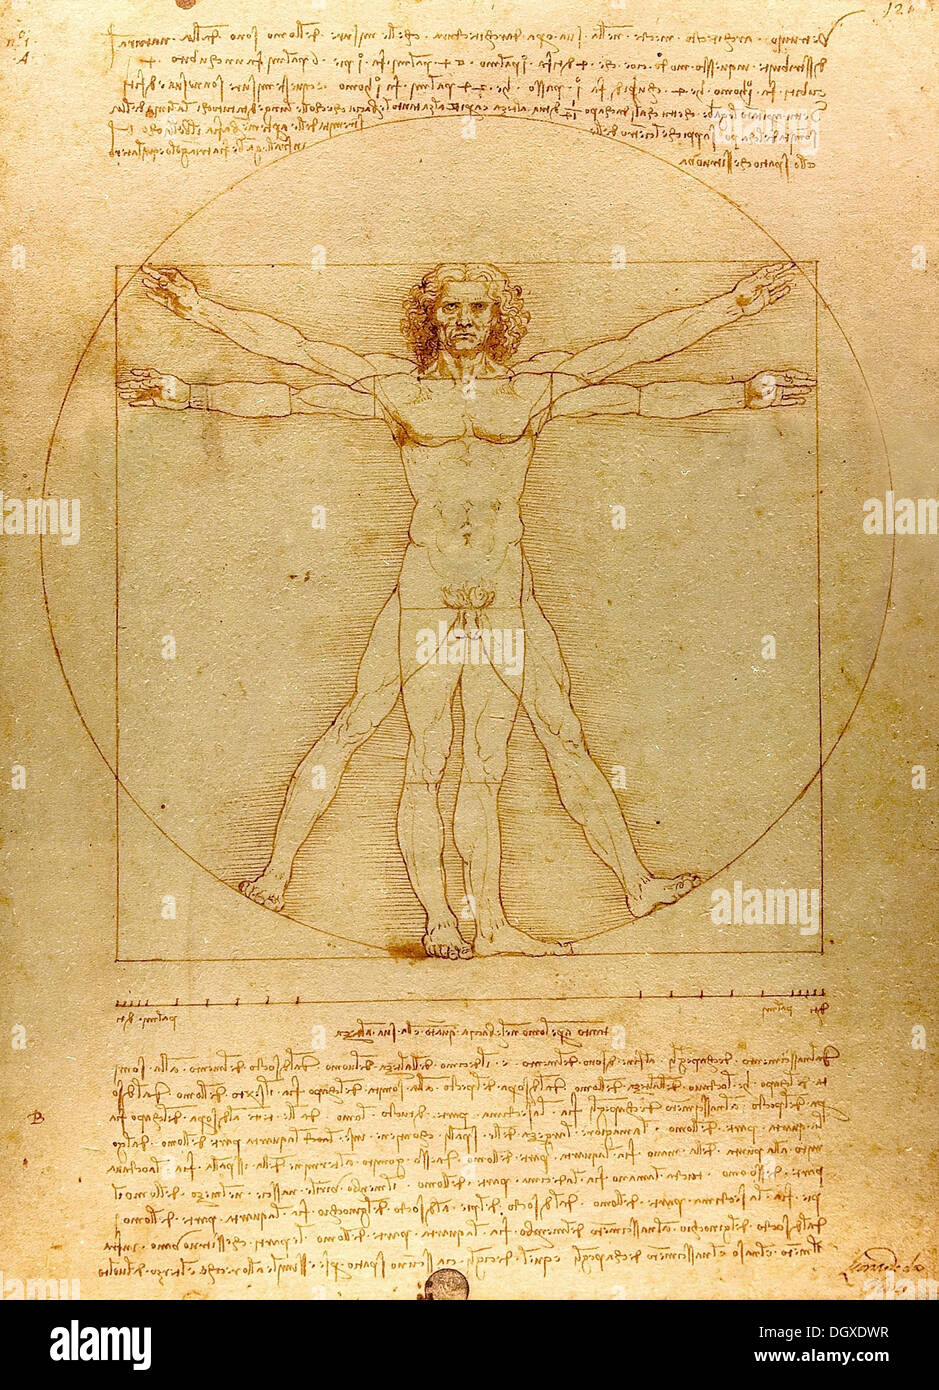 The Vitruvian Man - by Leonardo da Vinci, 1490 - Stock Image